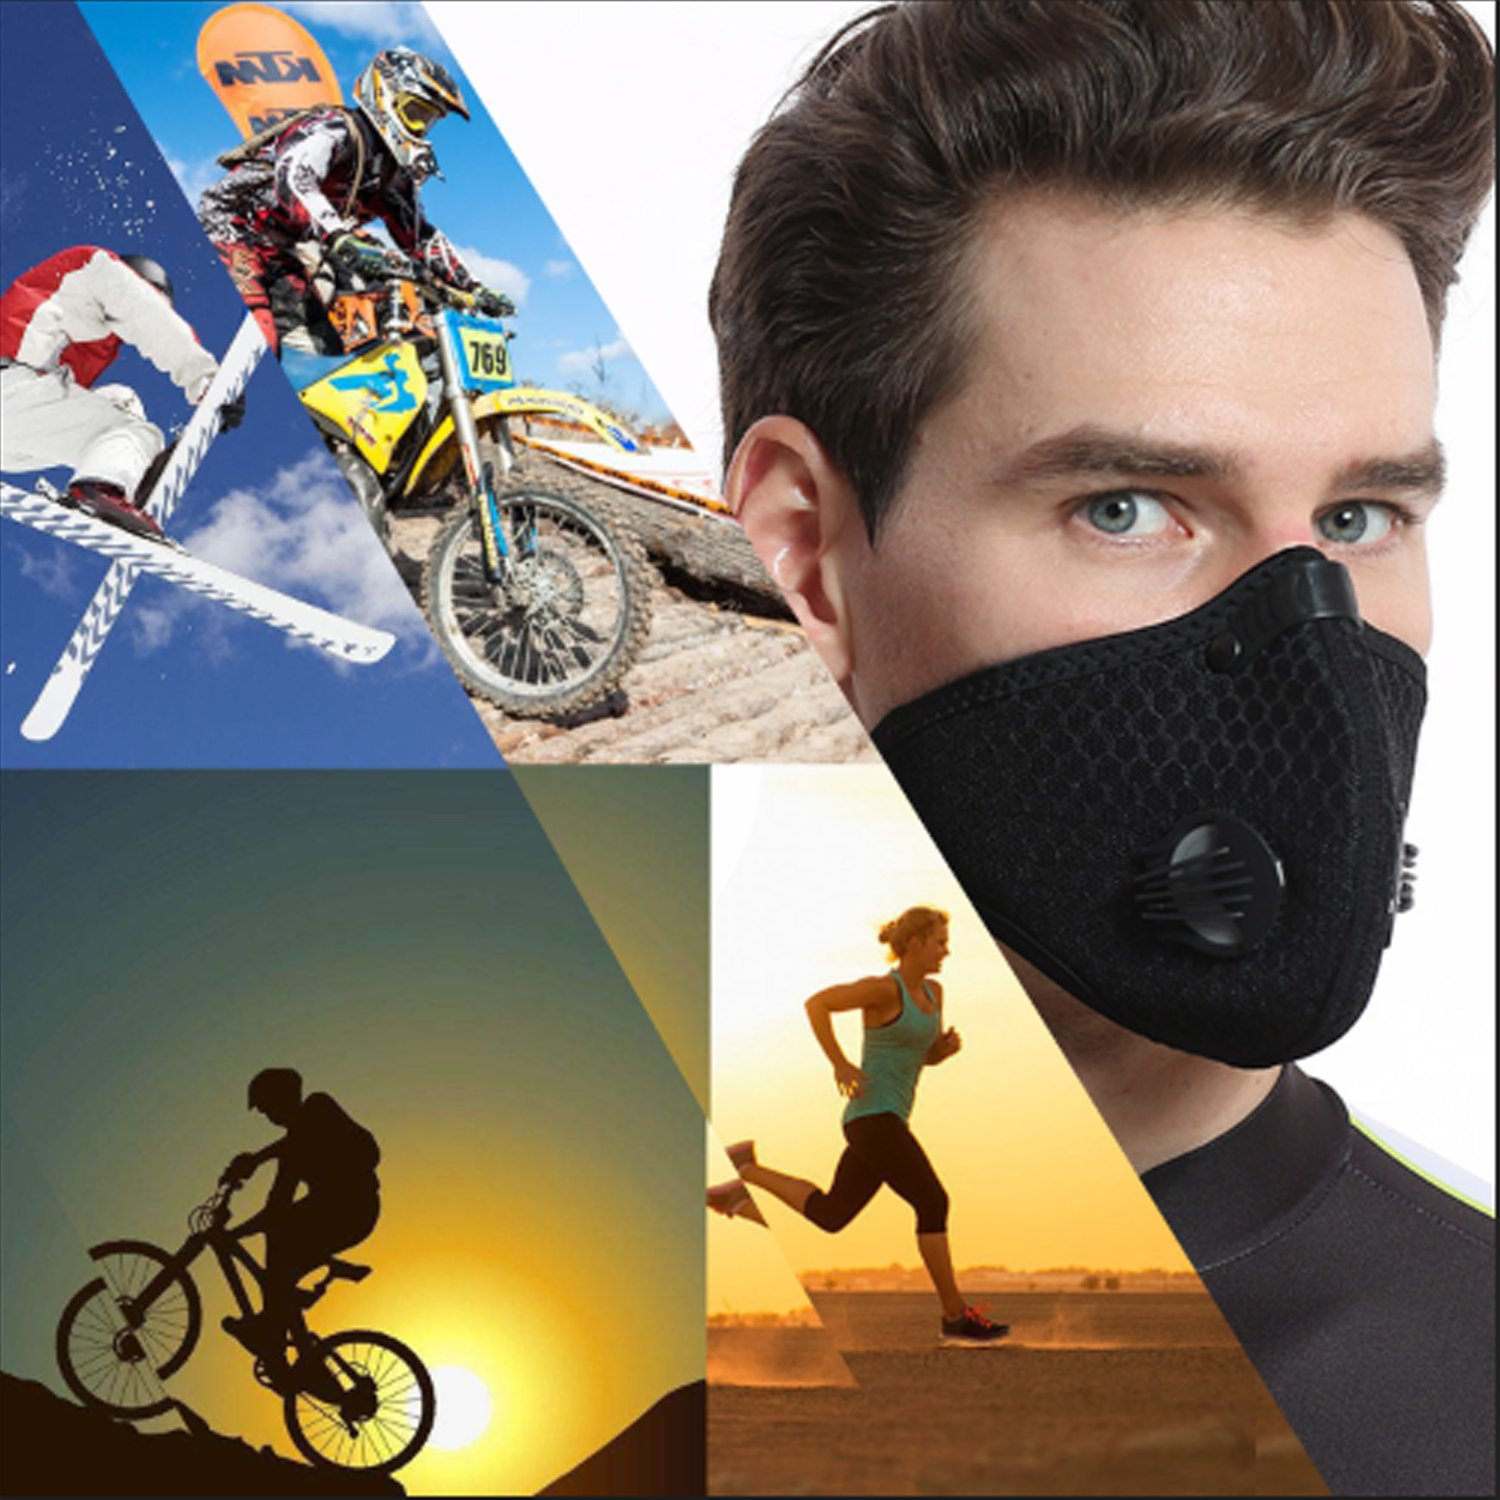 Dustproof Masks - 4 Pack Activated Carbon Dust Mask with Extra Filter Cotton Sheet and Valves for Exhaust Gas, Pollen Allergy, PM2.5, Running, Cycling, Outdoor Activities (4 Set Black and Orange) by Novemkada (Image #7)